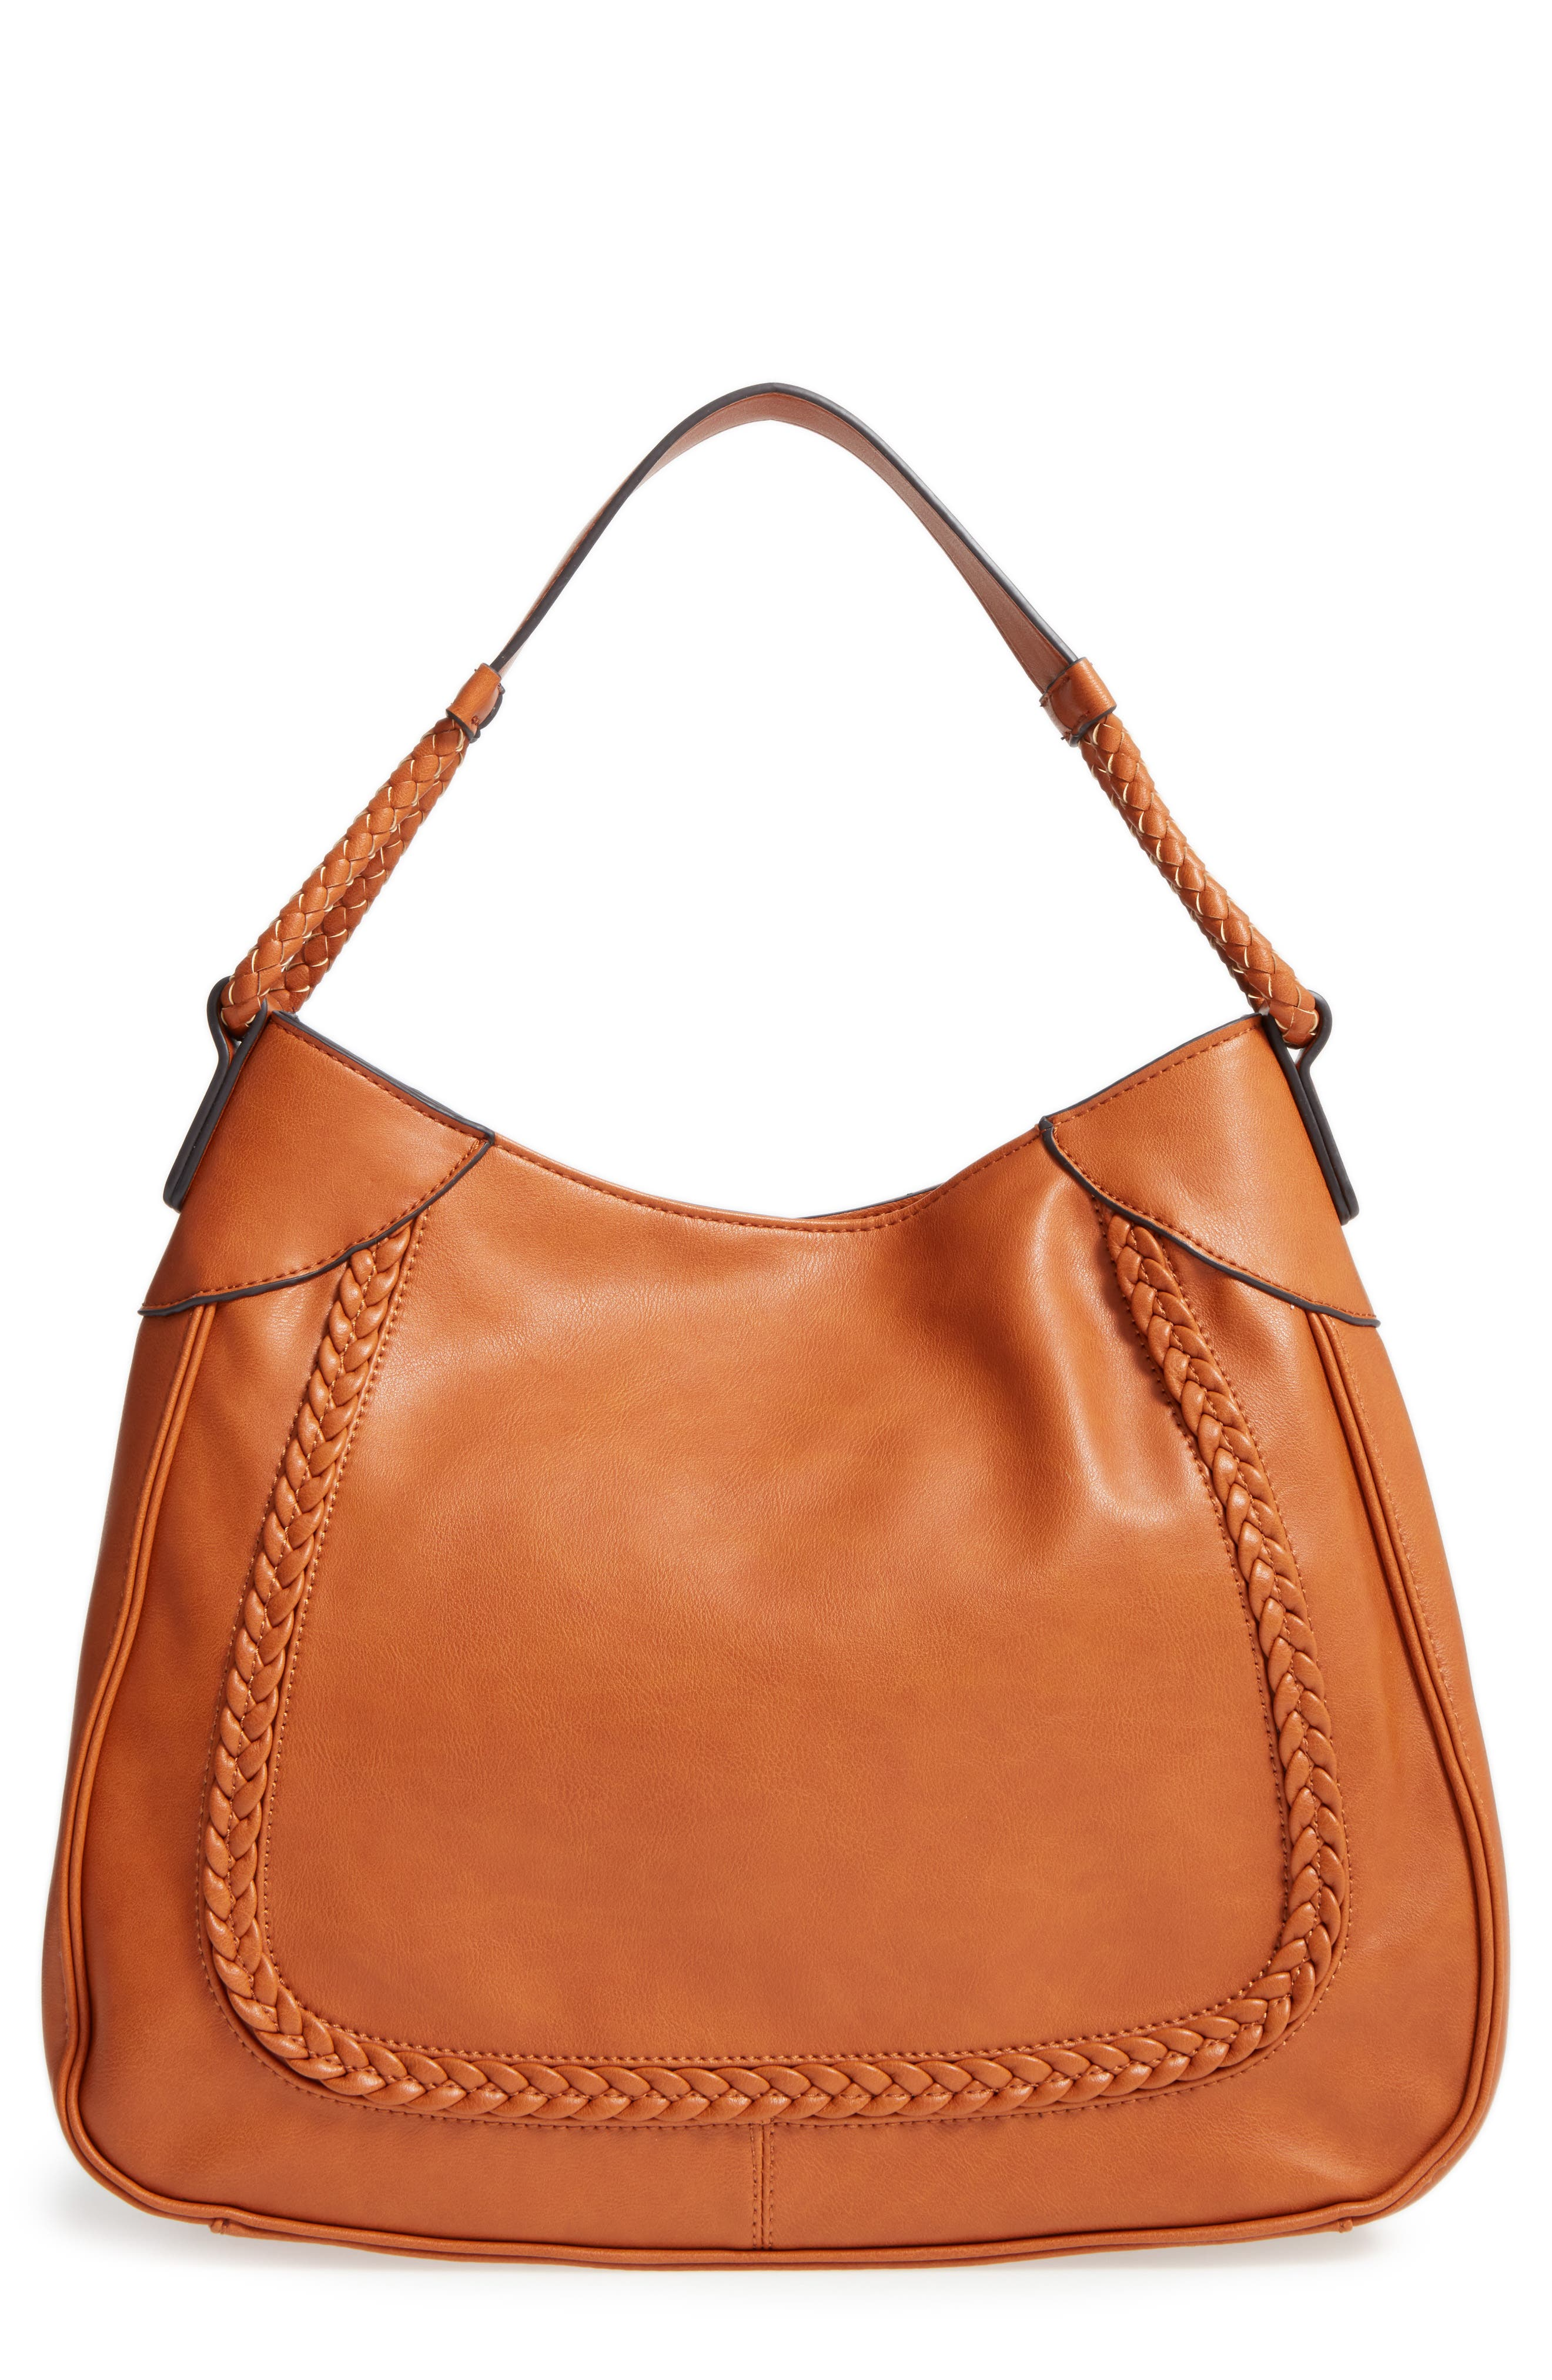 Alternate Image 1 Selected - Sole Society Rema Faux Leather Shoulder Bag